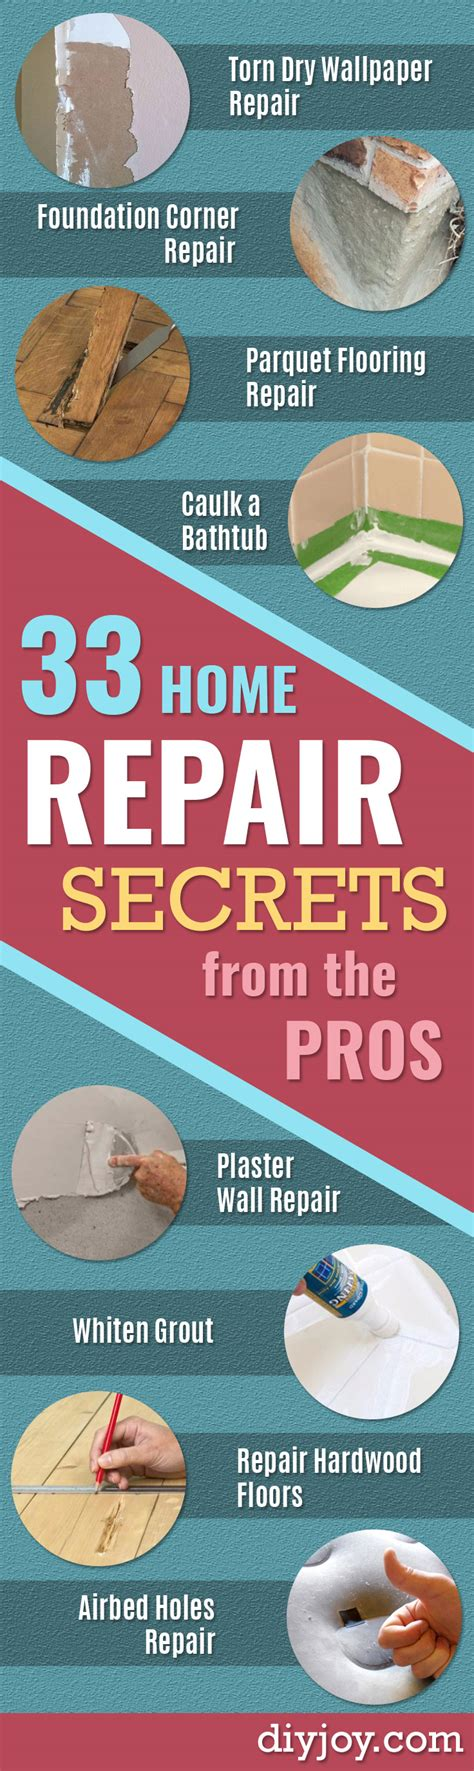 33 home repair secrets from the pros diy